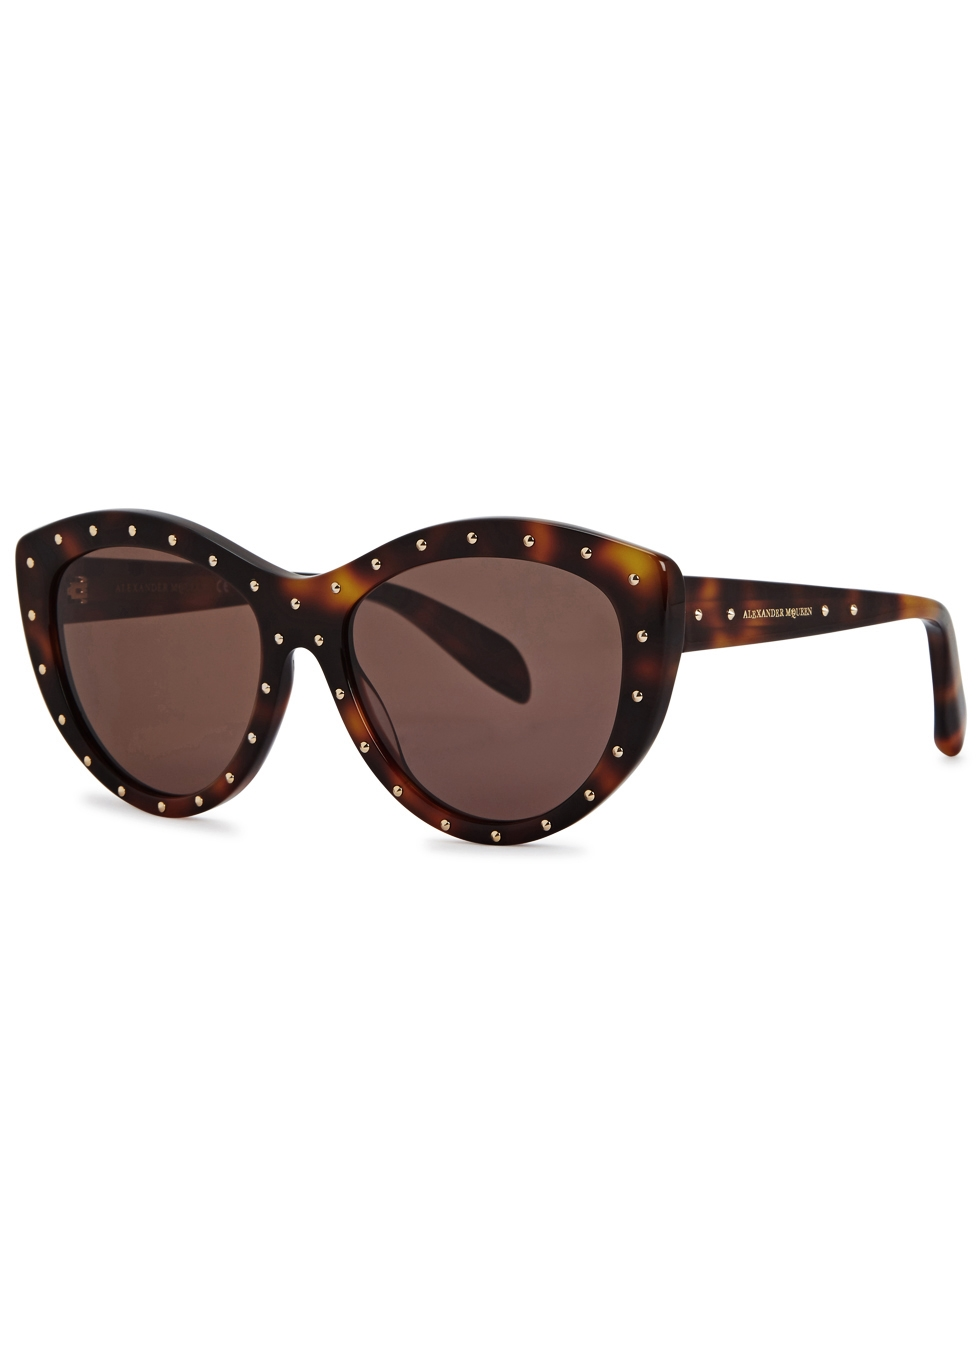 Dark brown studded cat-eye sunglasses - Alexander McQueen